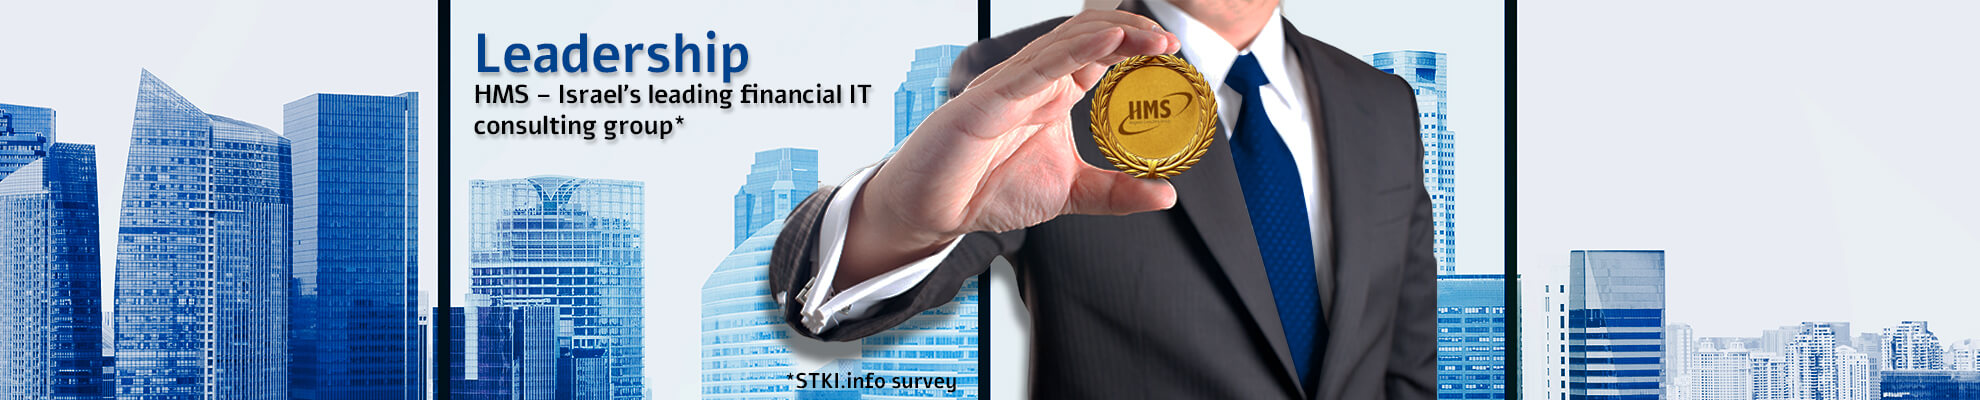 Israel's leading financial IT consulting group